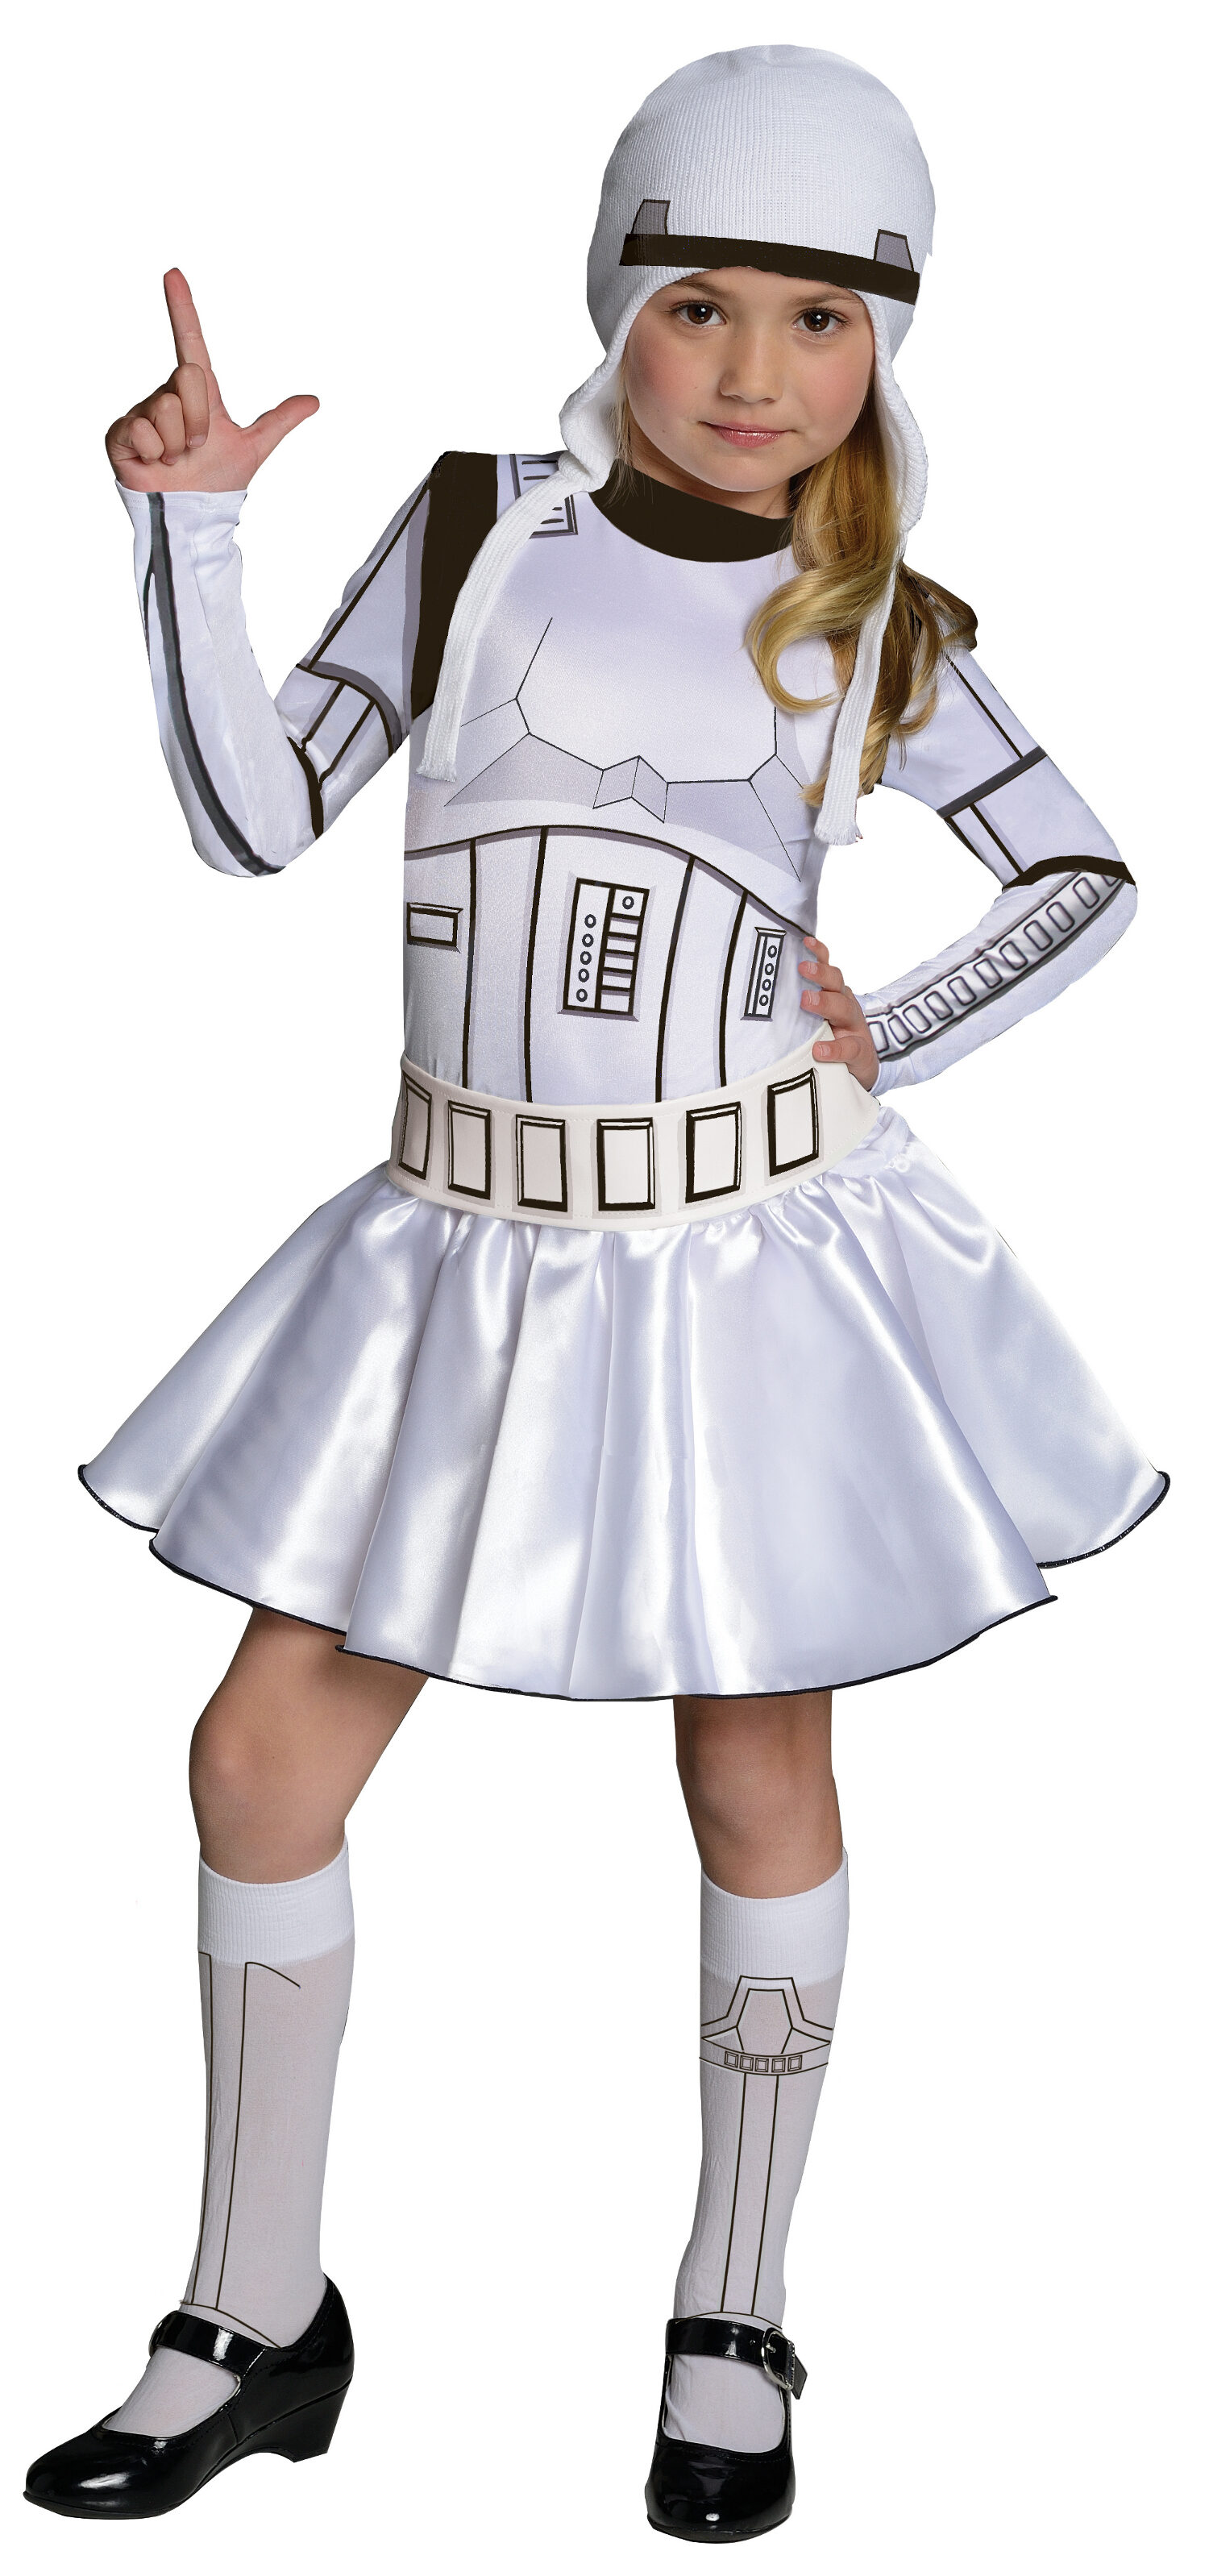 sc 1 st  Mr. Costumes & Girls Stormtrooper Star Wars Kids Costume - Mr. Costumes